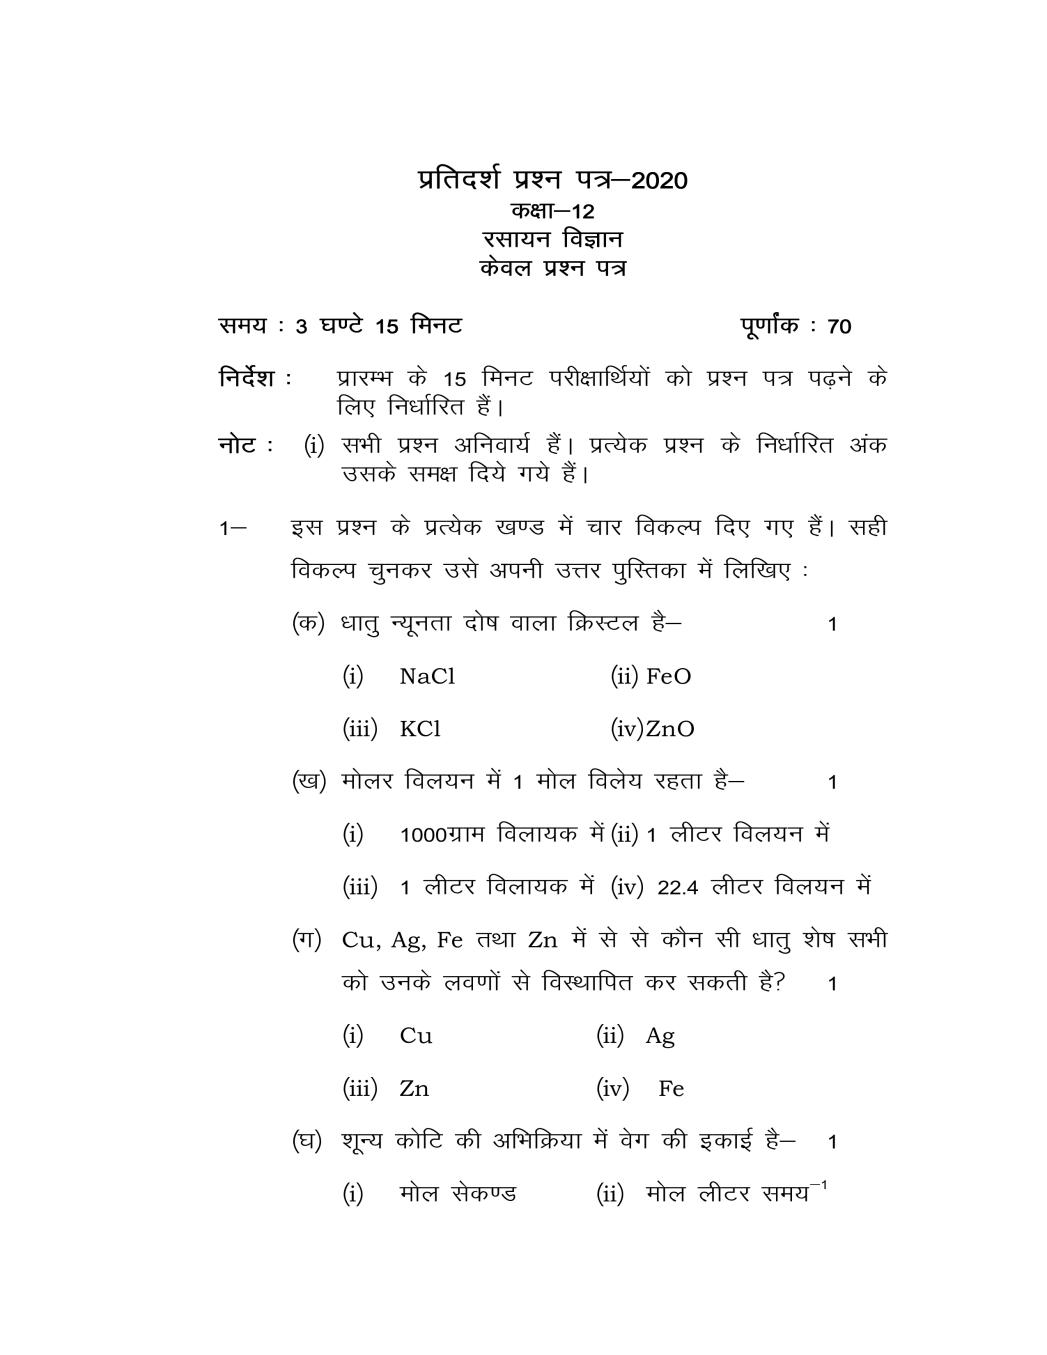 UP Board Model Paper 2020 Class 12th - Chemistry